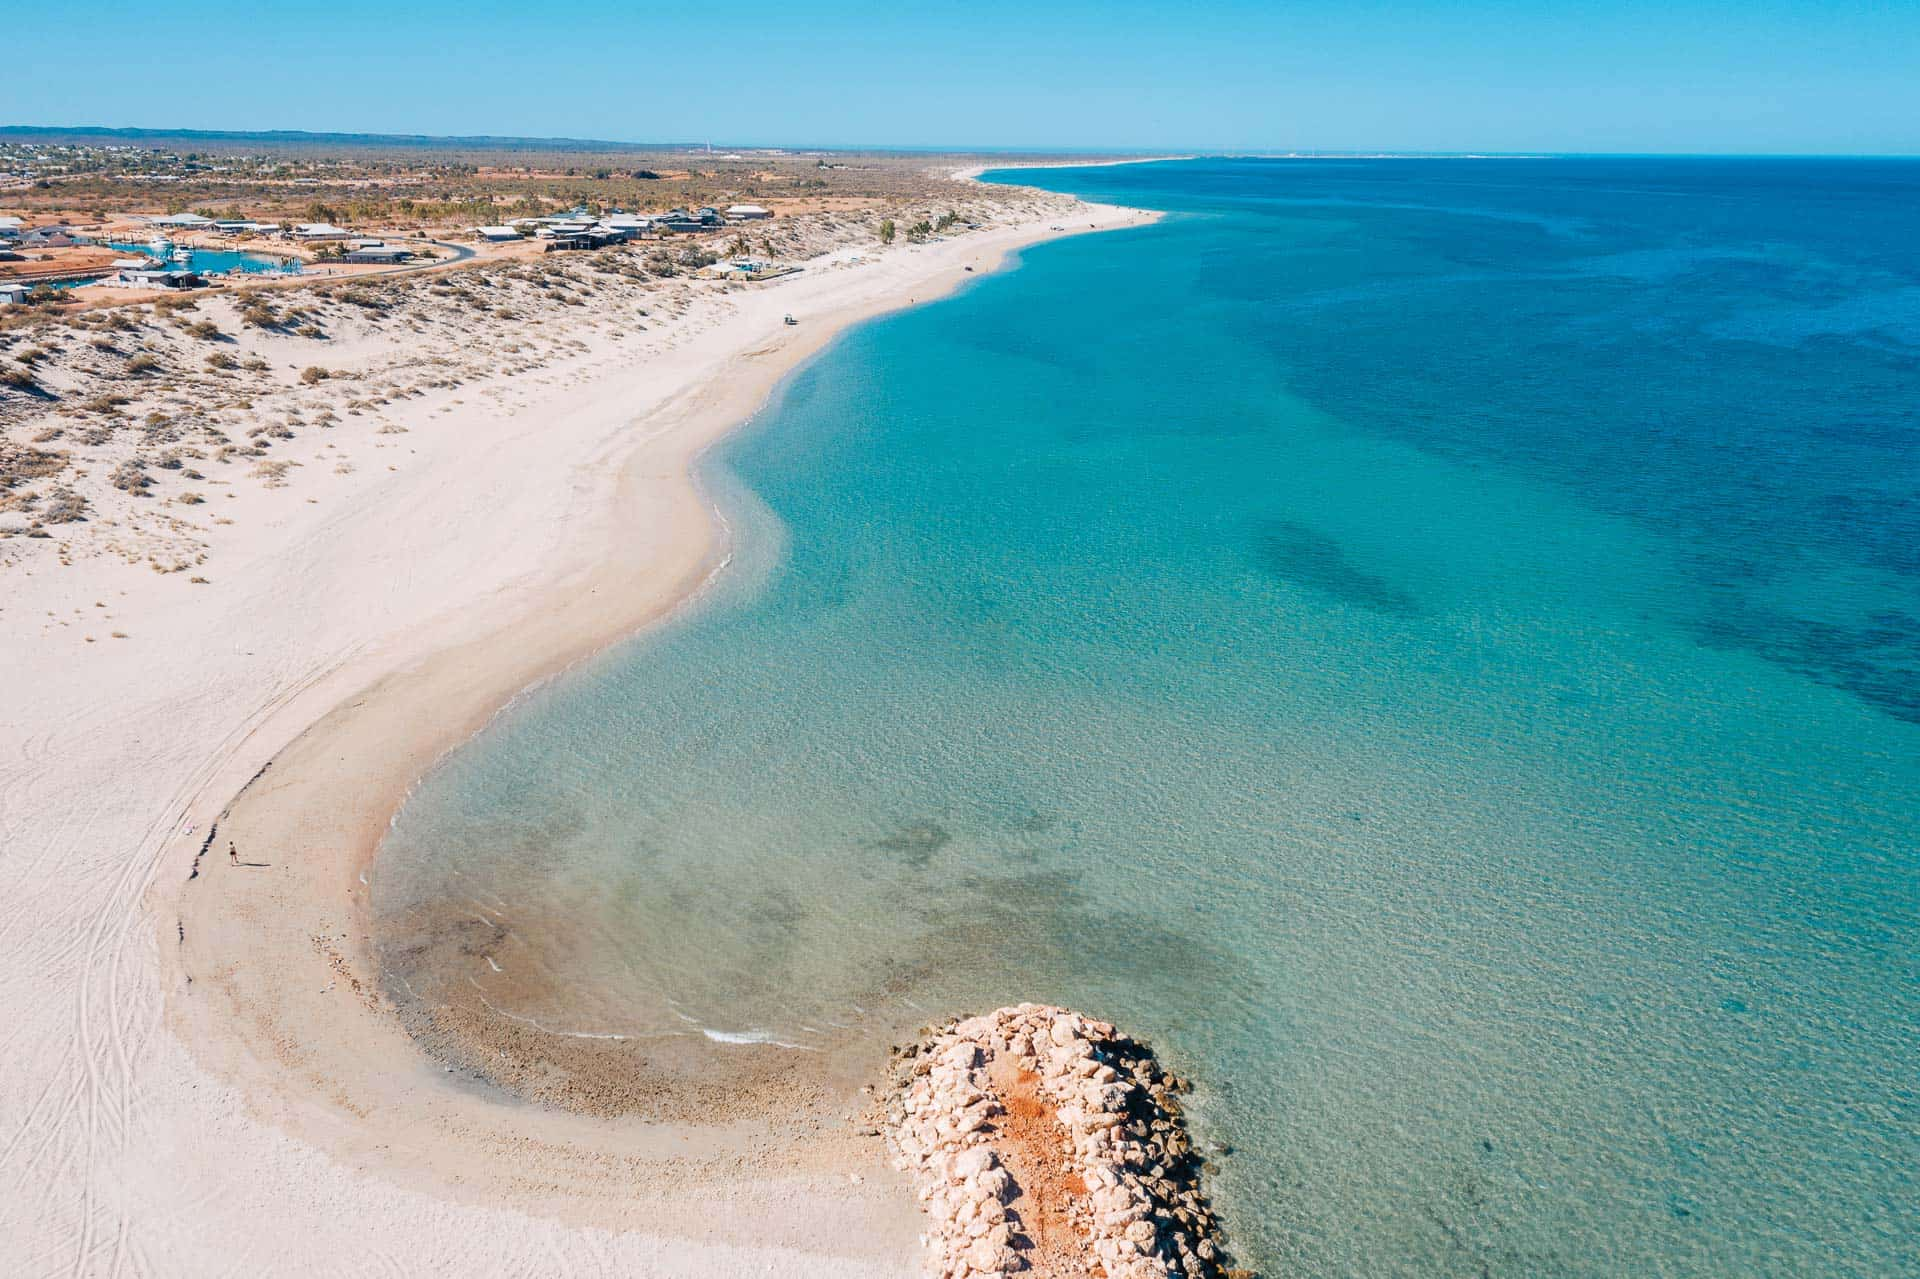 town beach exmouth, things to do in exmouth, exmouth western australia, what to do in exmouth, exmouth things to do